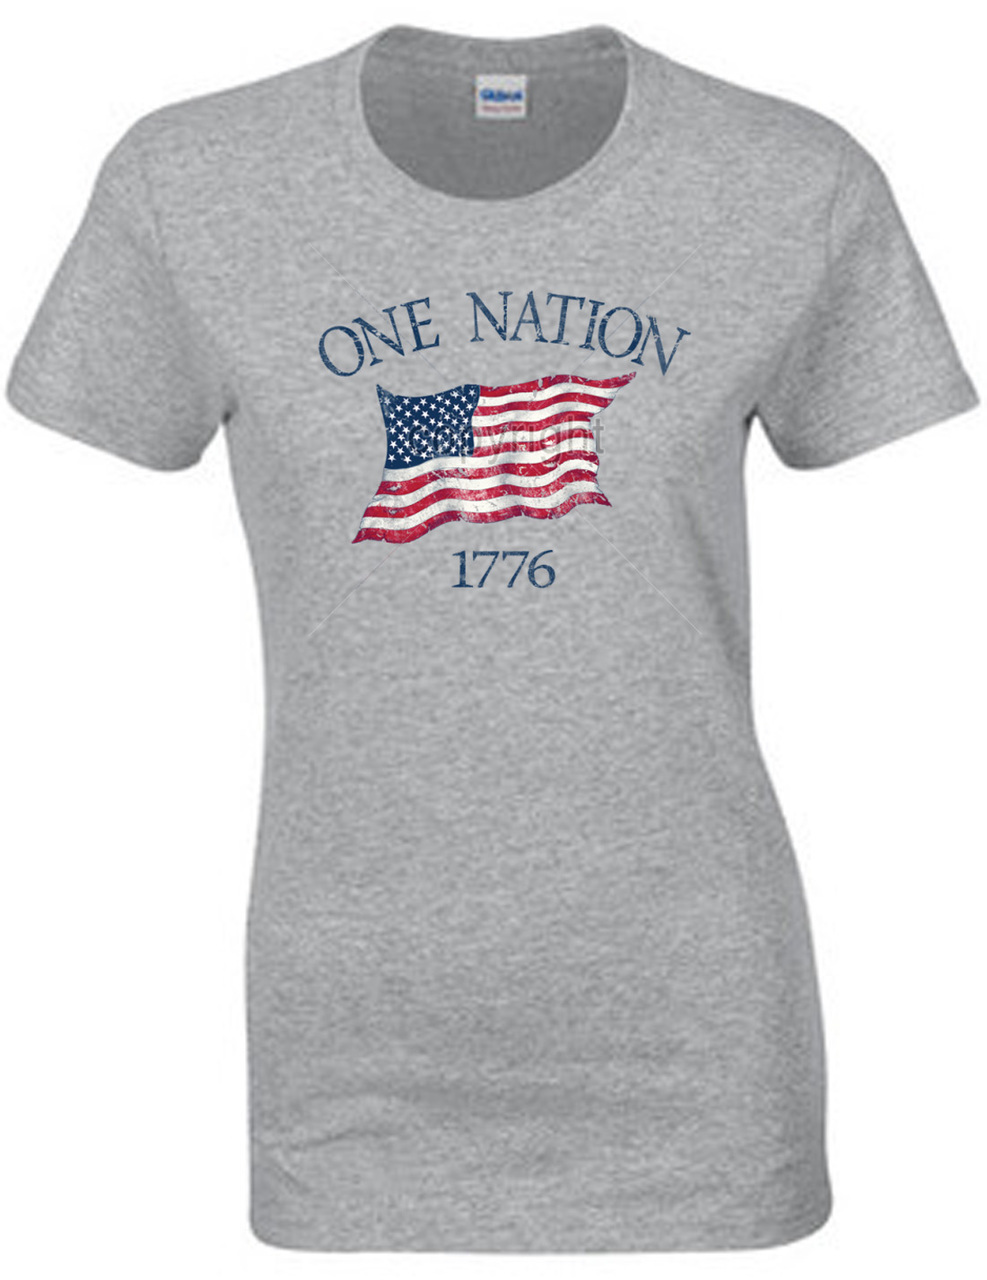 One Nation 1776 T-Shirt